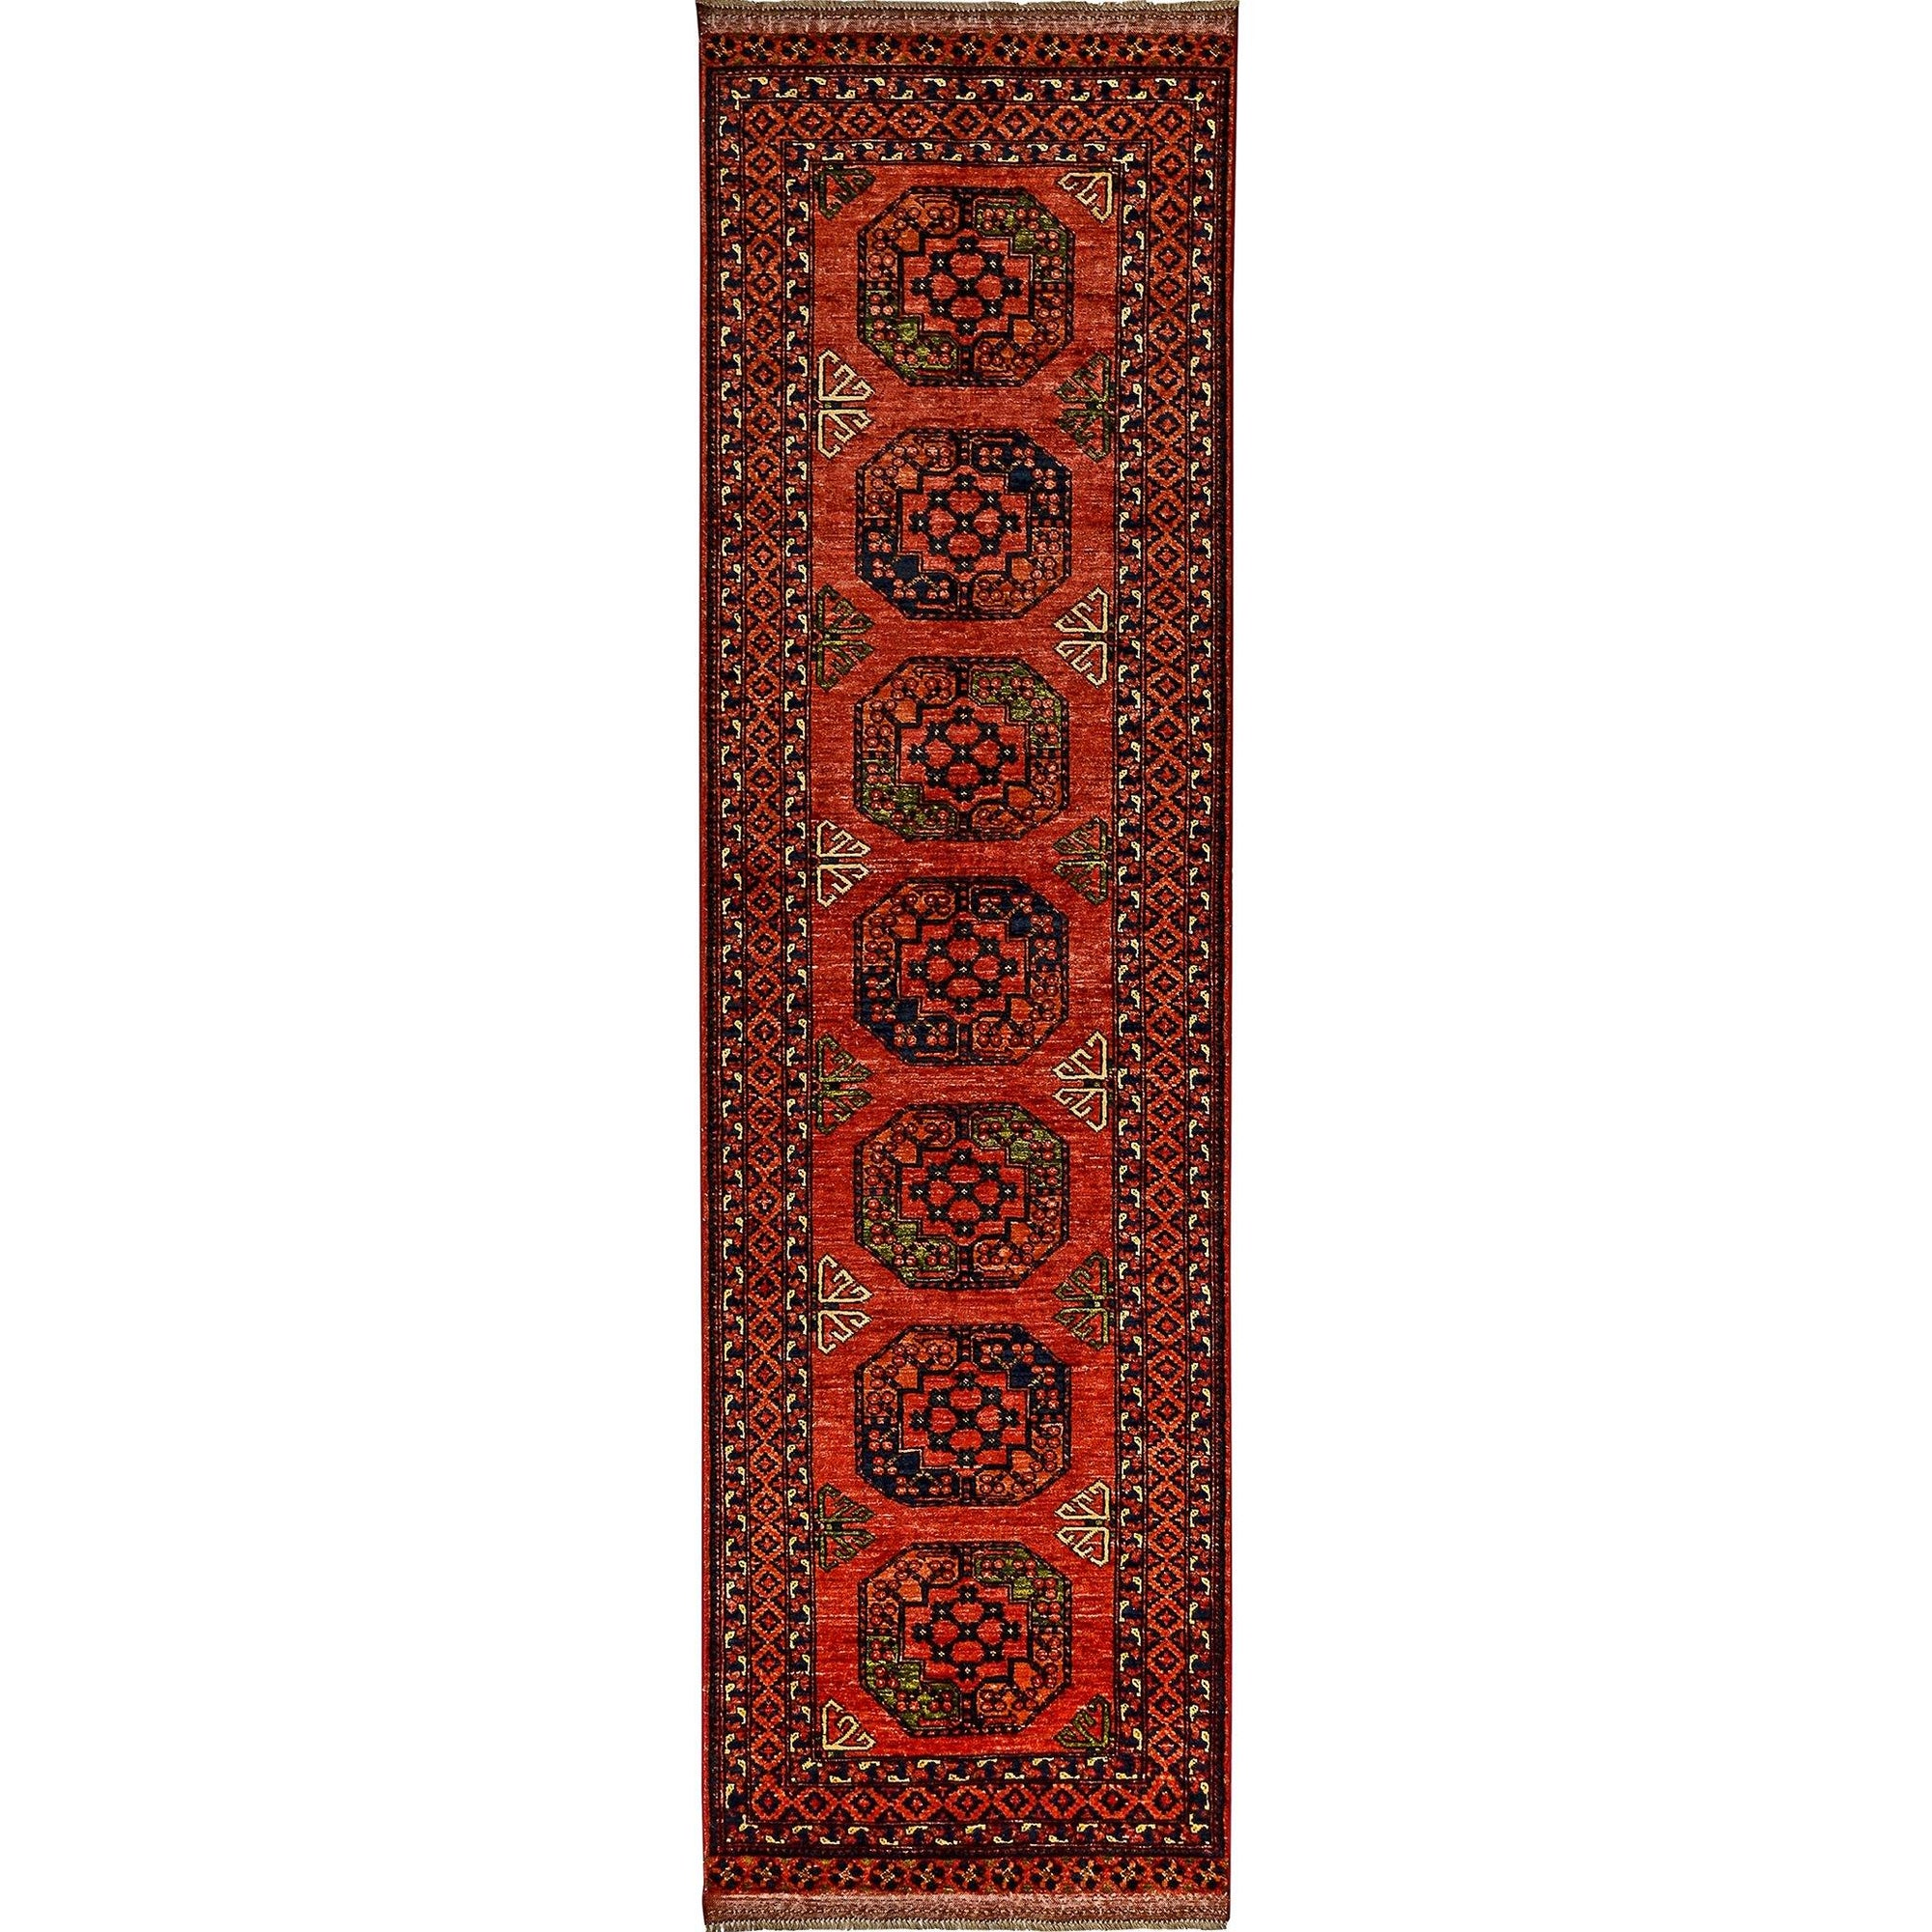 Fine Hand-knotted Turkmen Wool Runner 85cm x 295cm Persian-Rug | House-of-Haghi | NewMarket | Auckland | NZ | Handmade Persian Rugs | Hand Knotted Persian Rugs